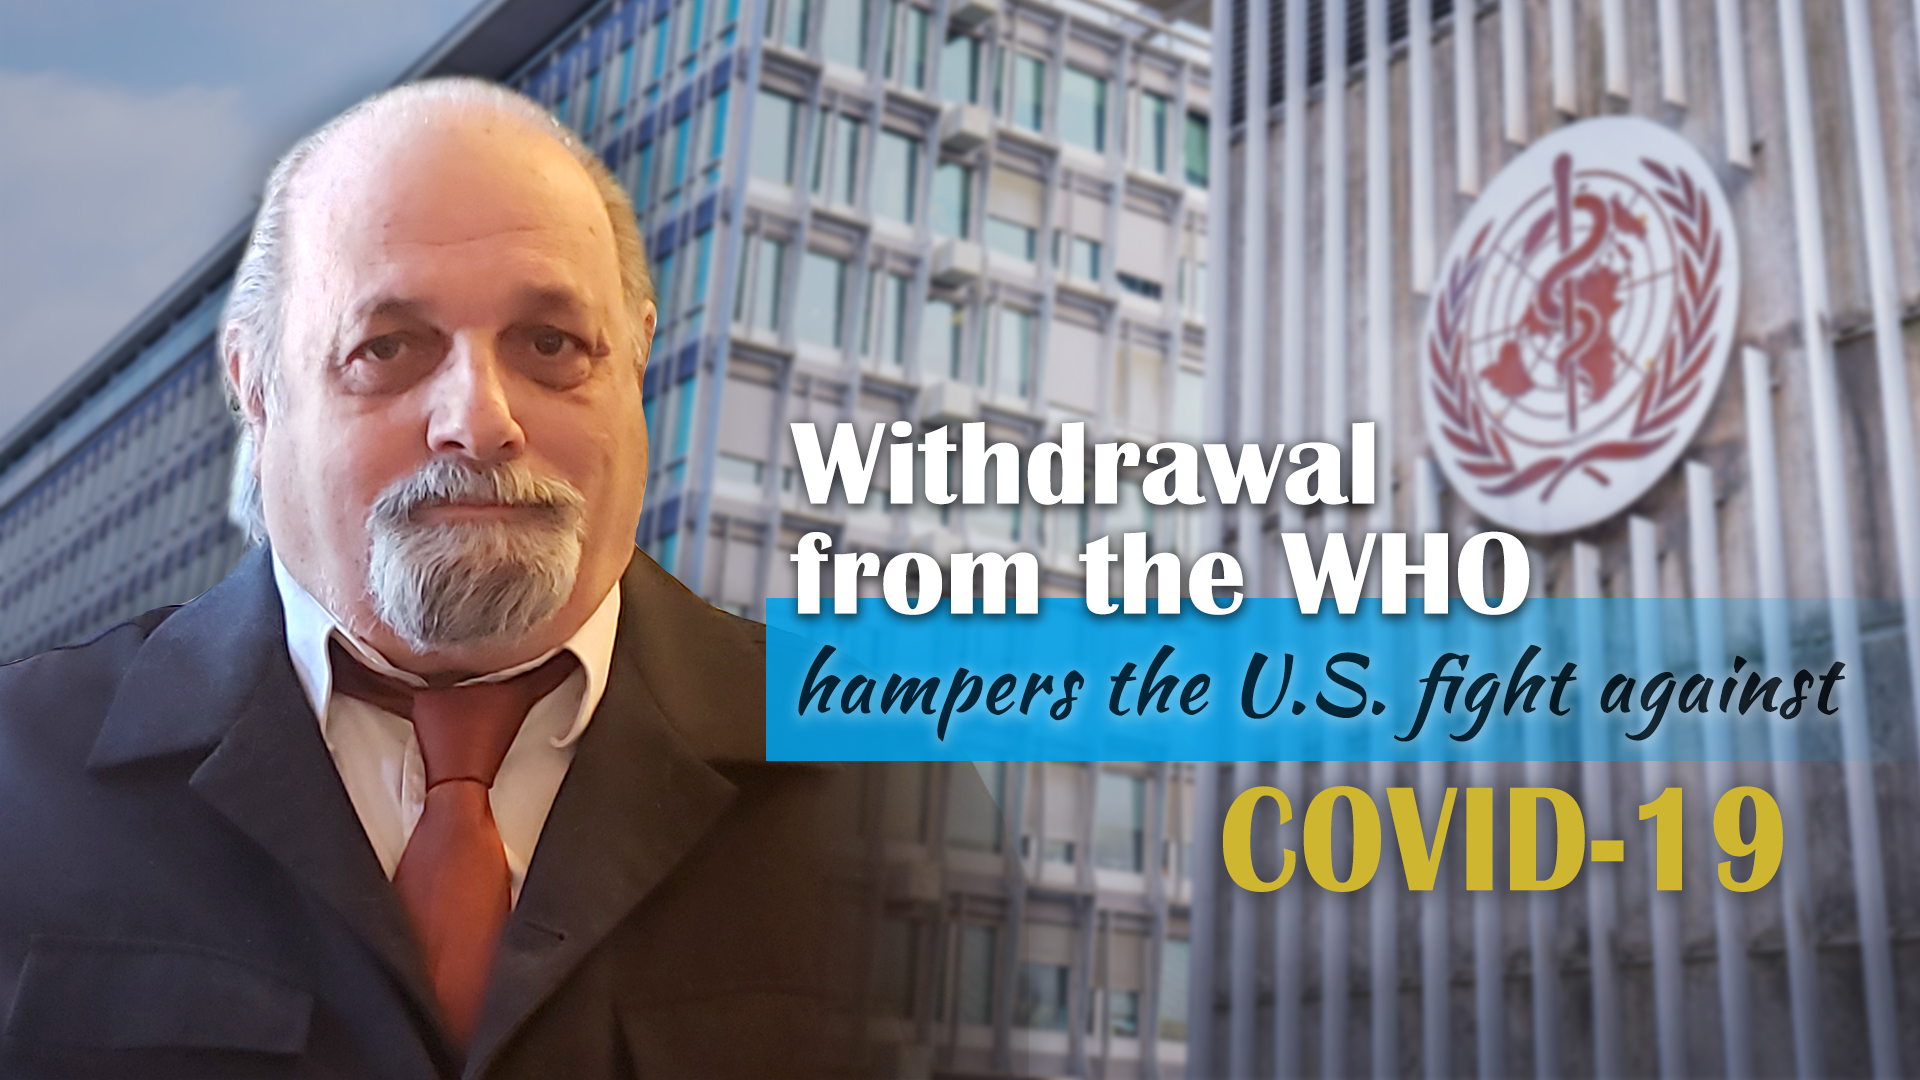 Withdrawal from the WHO hampers the US fight against COVID-19